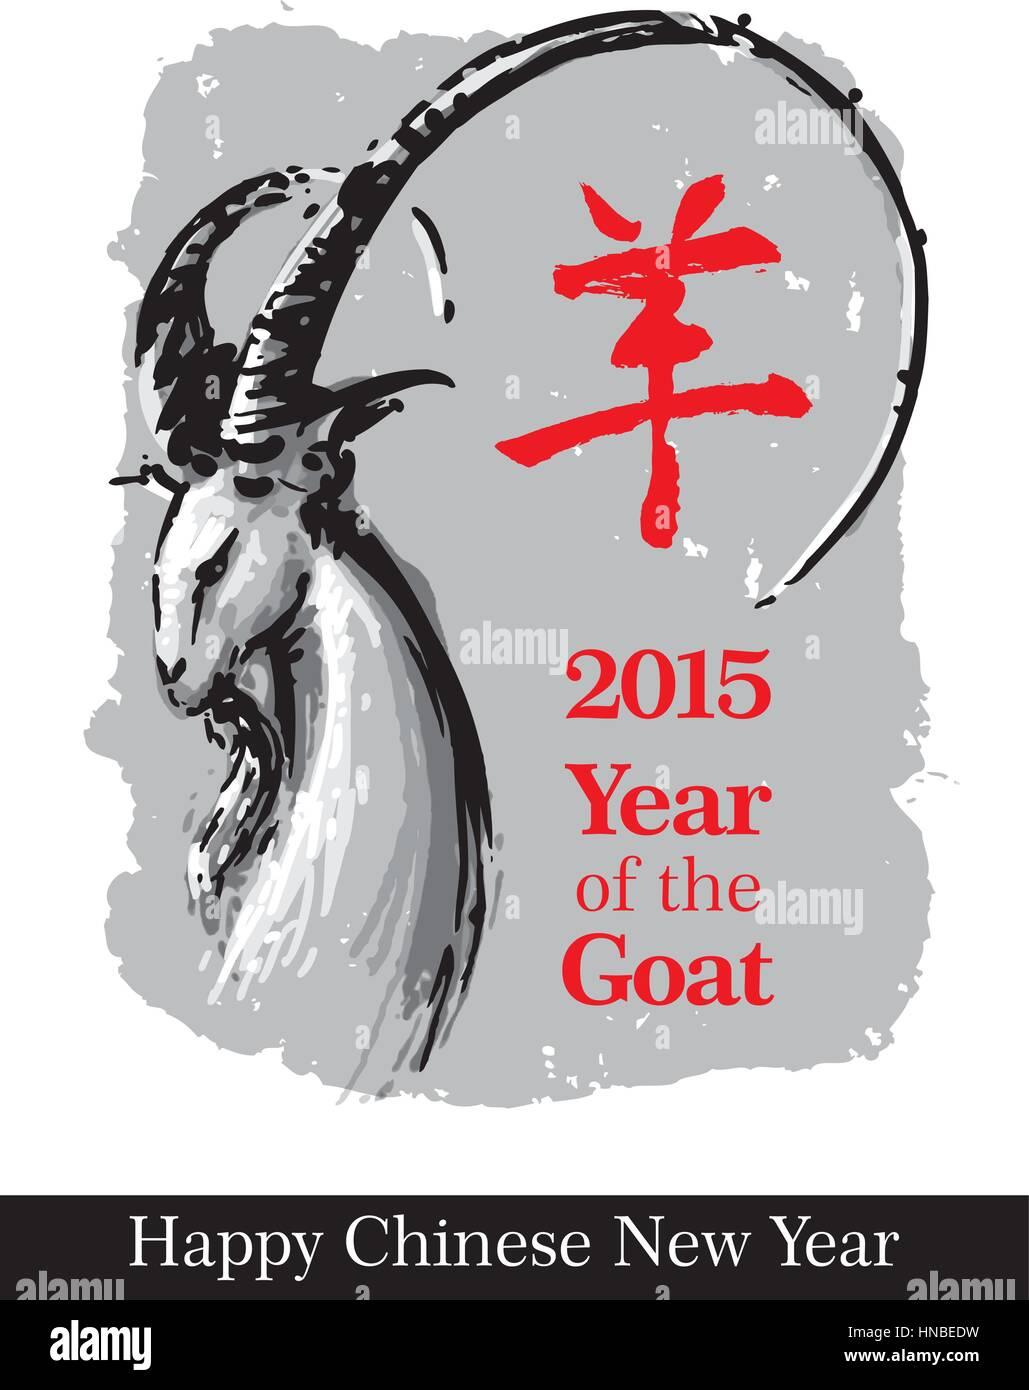 Vector illustration of a hand drawn Goat and text '2015 Year of the Goat ' and a  calligraphically drawn - Stock Image